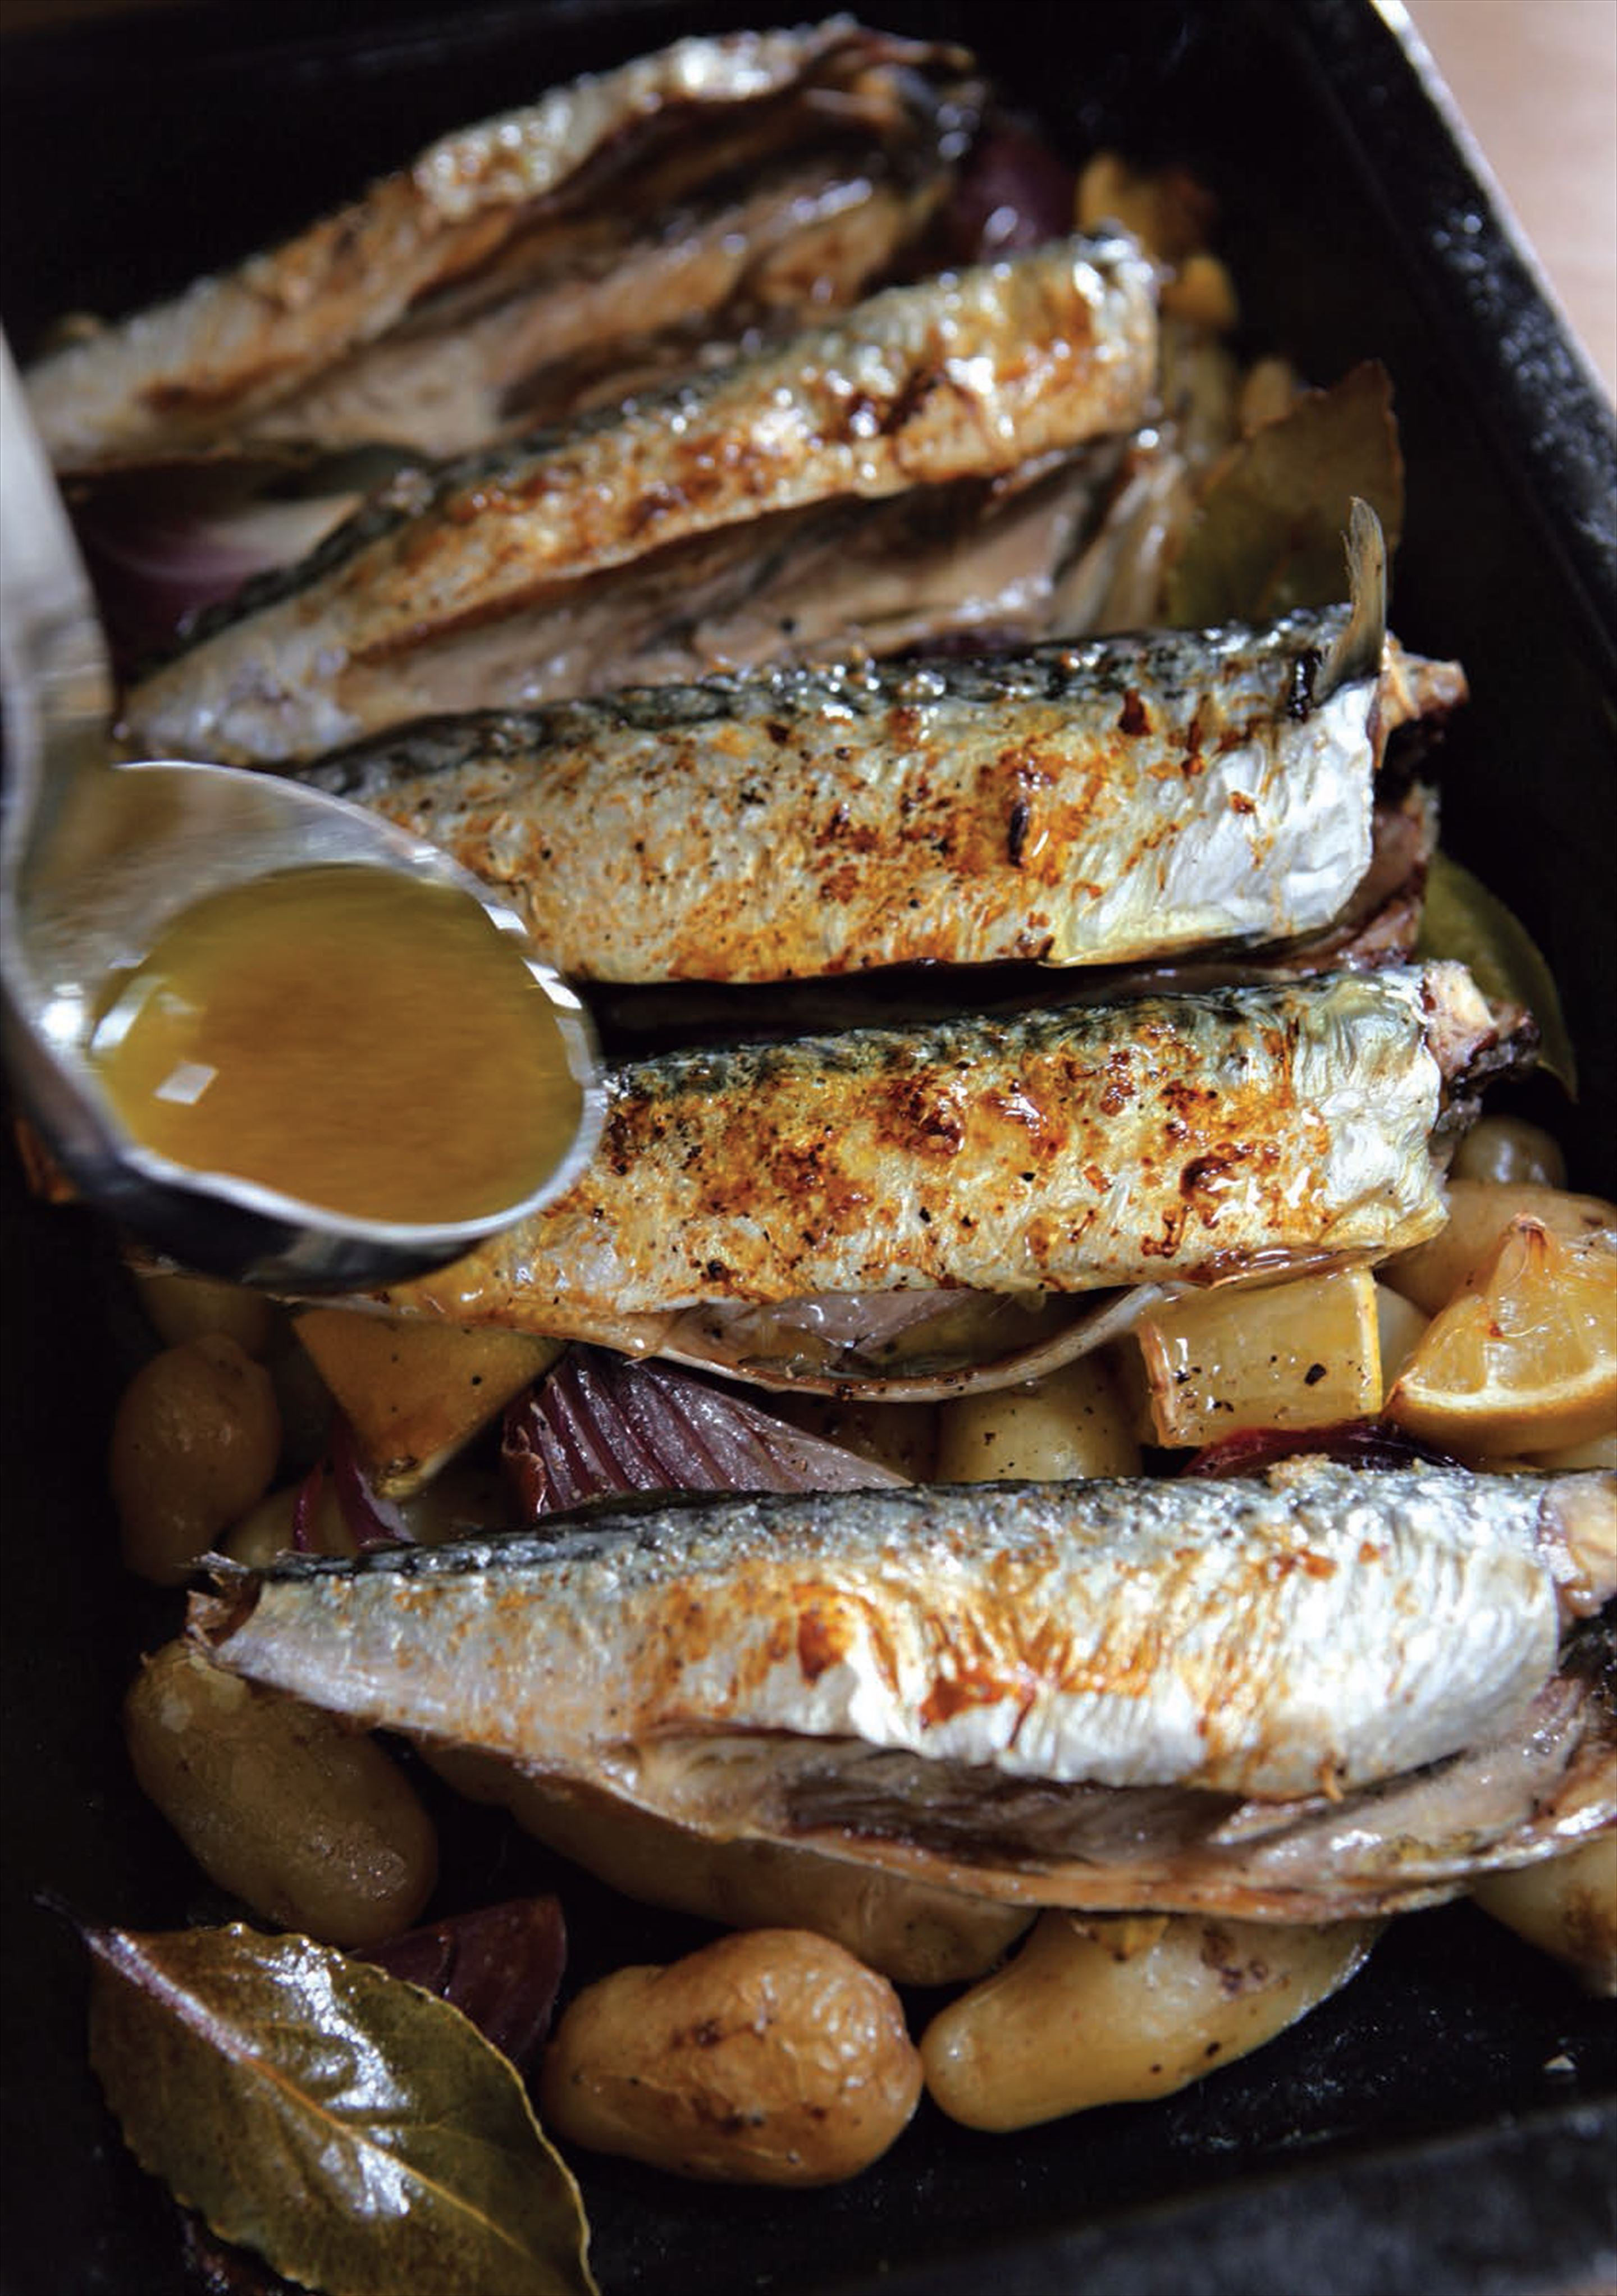 Mackerel on potatoes and bay